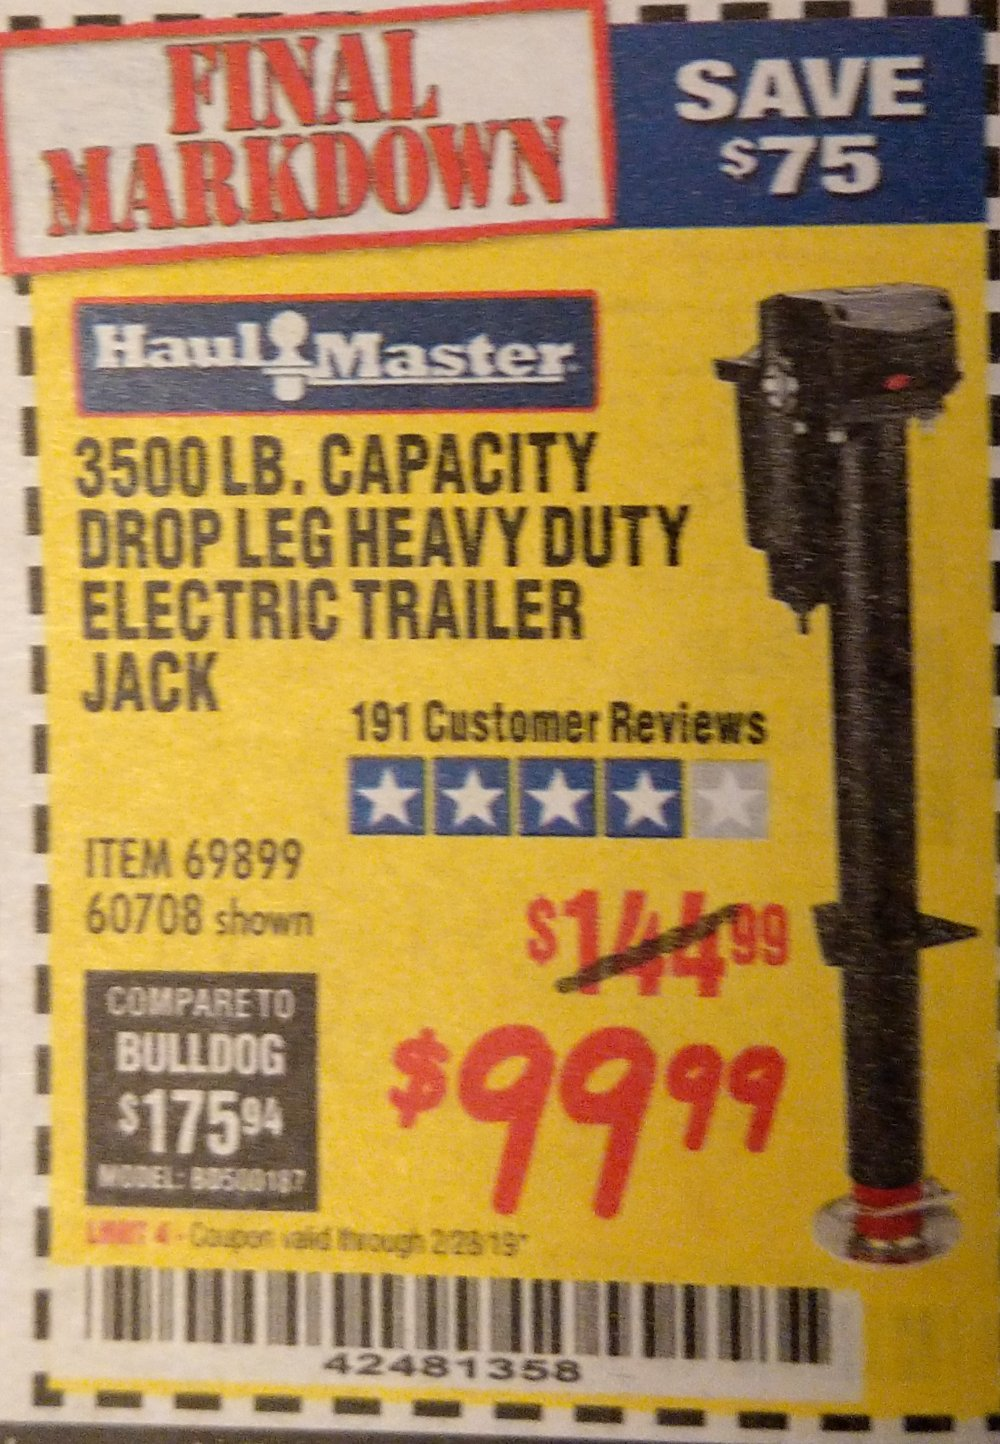 Harbor Freight Coupon, HF Coupons - 3500 Lb Drop Leg Heavy Duty Electric Trailer Jack